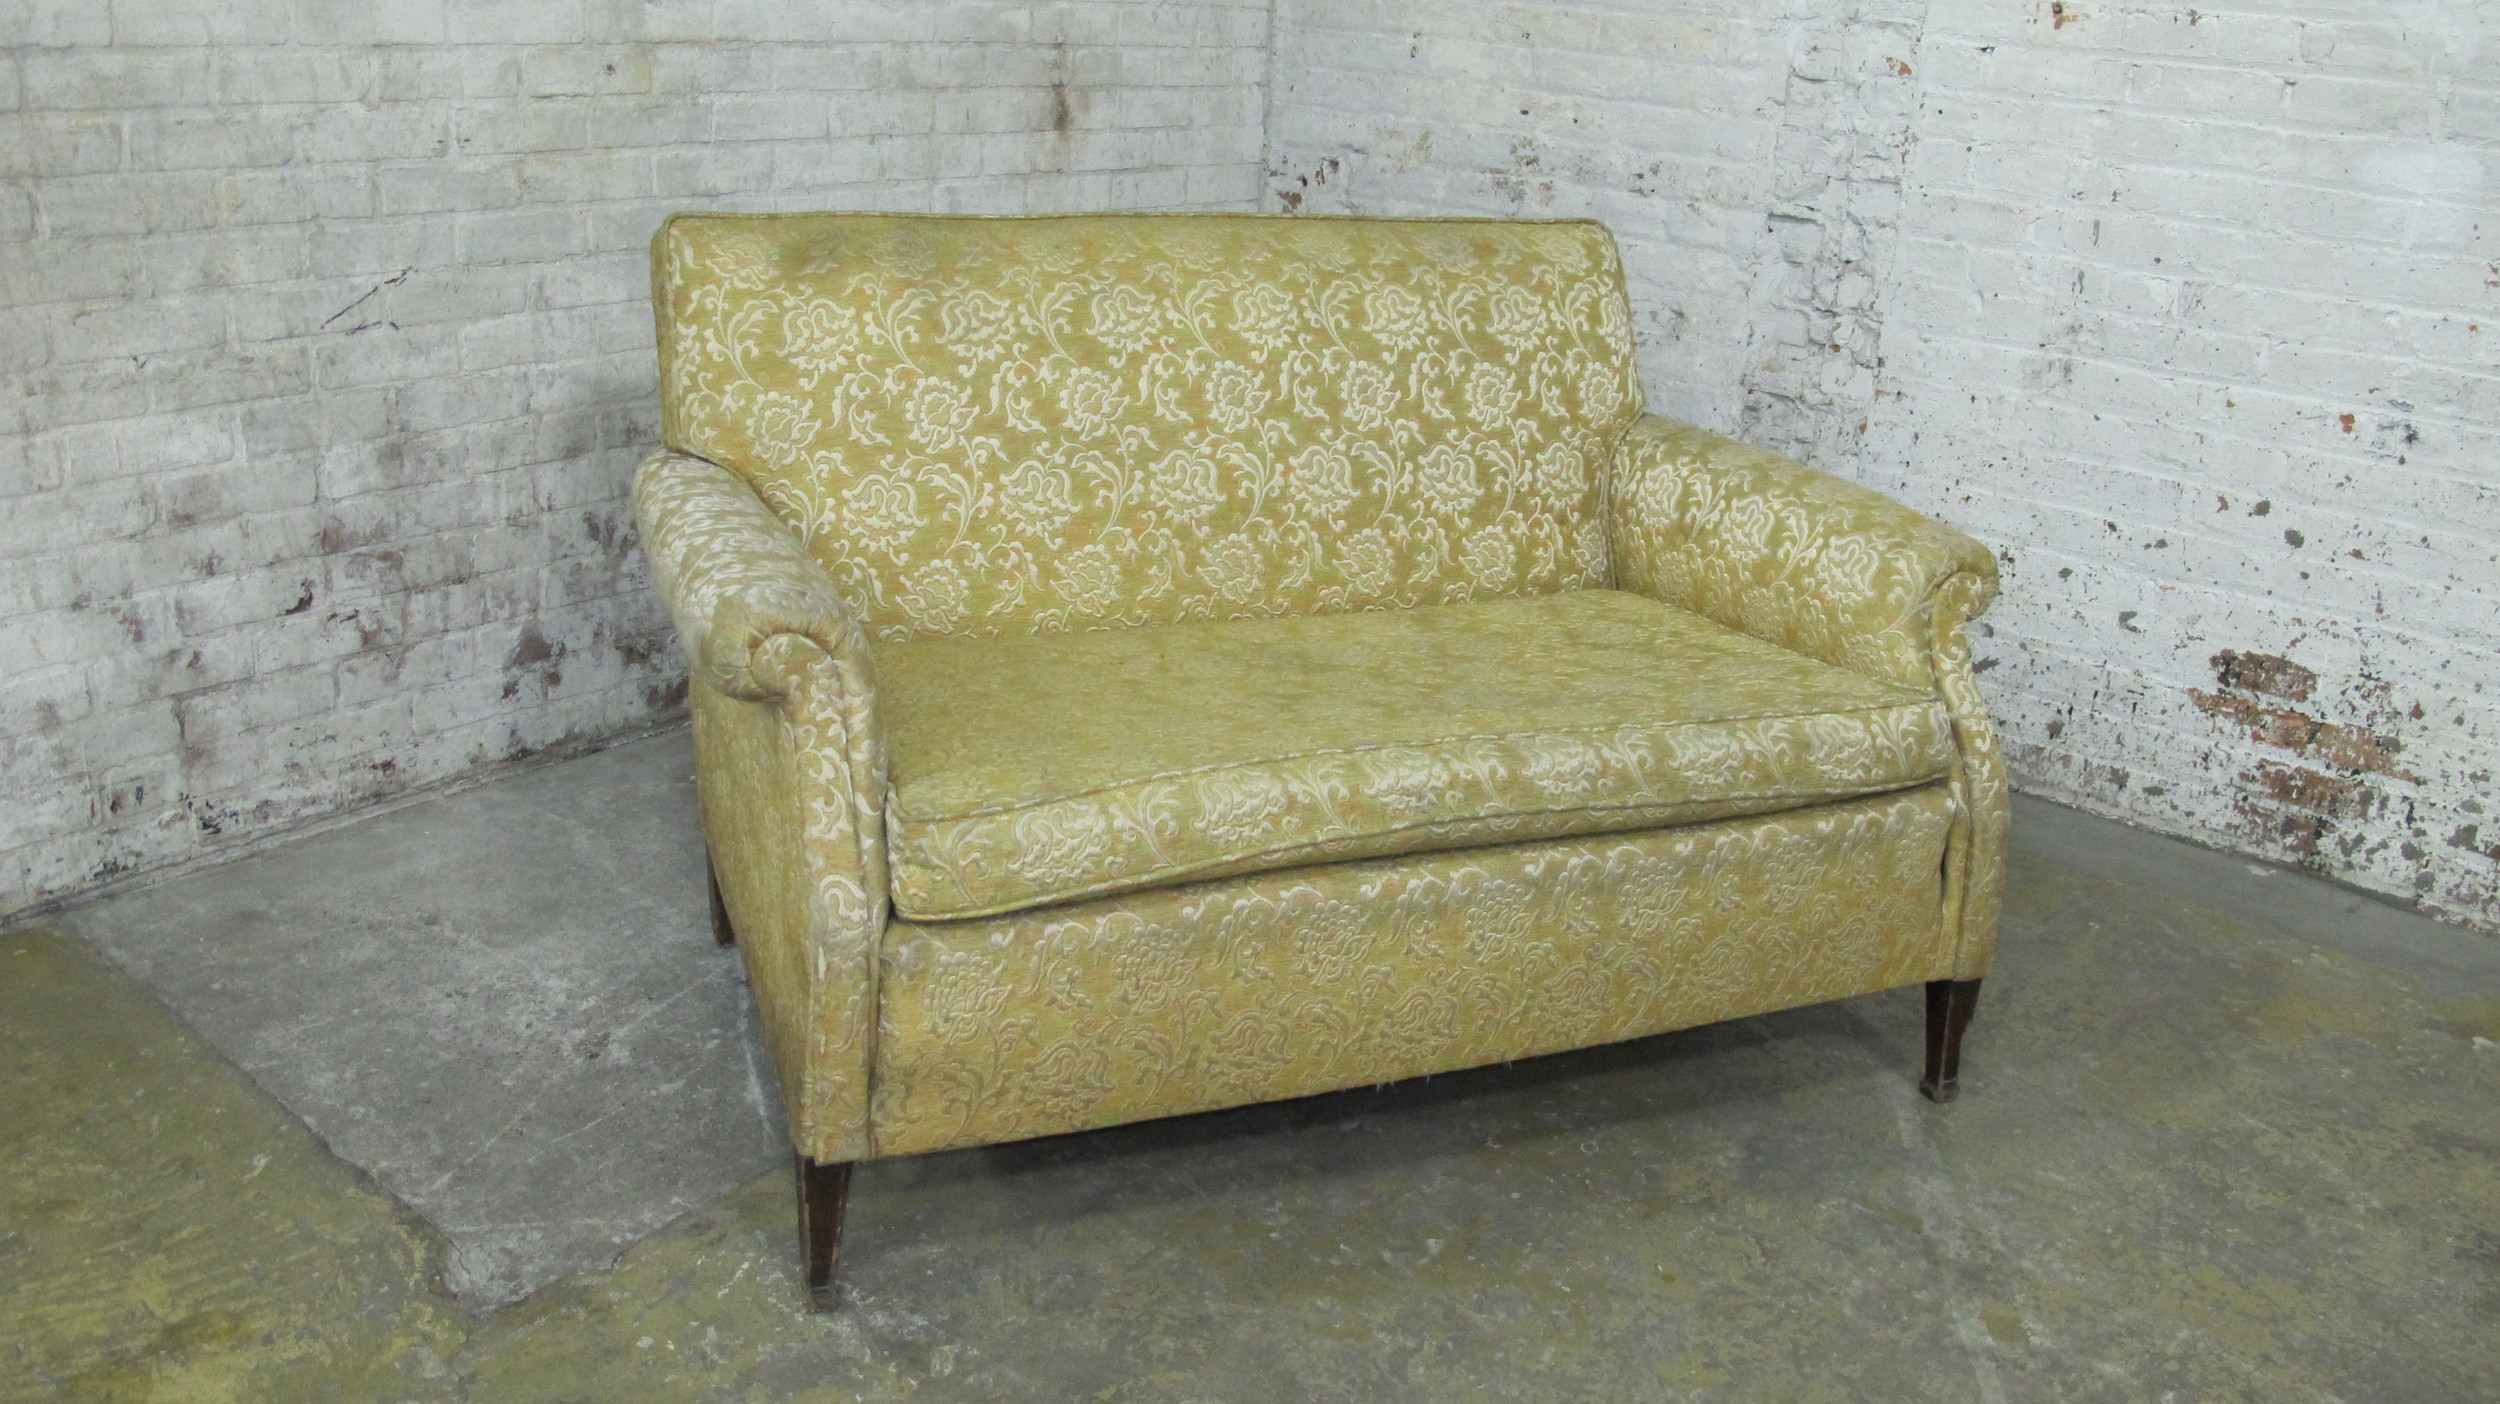 Yellow Upholstered 2-seater Sofa $200